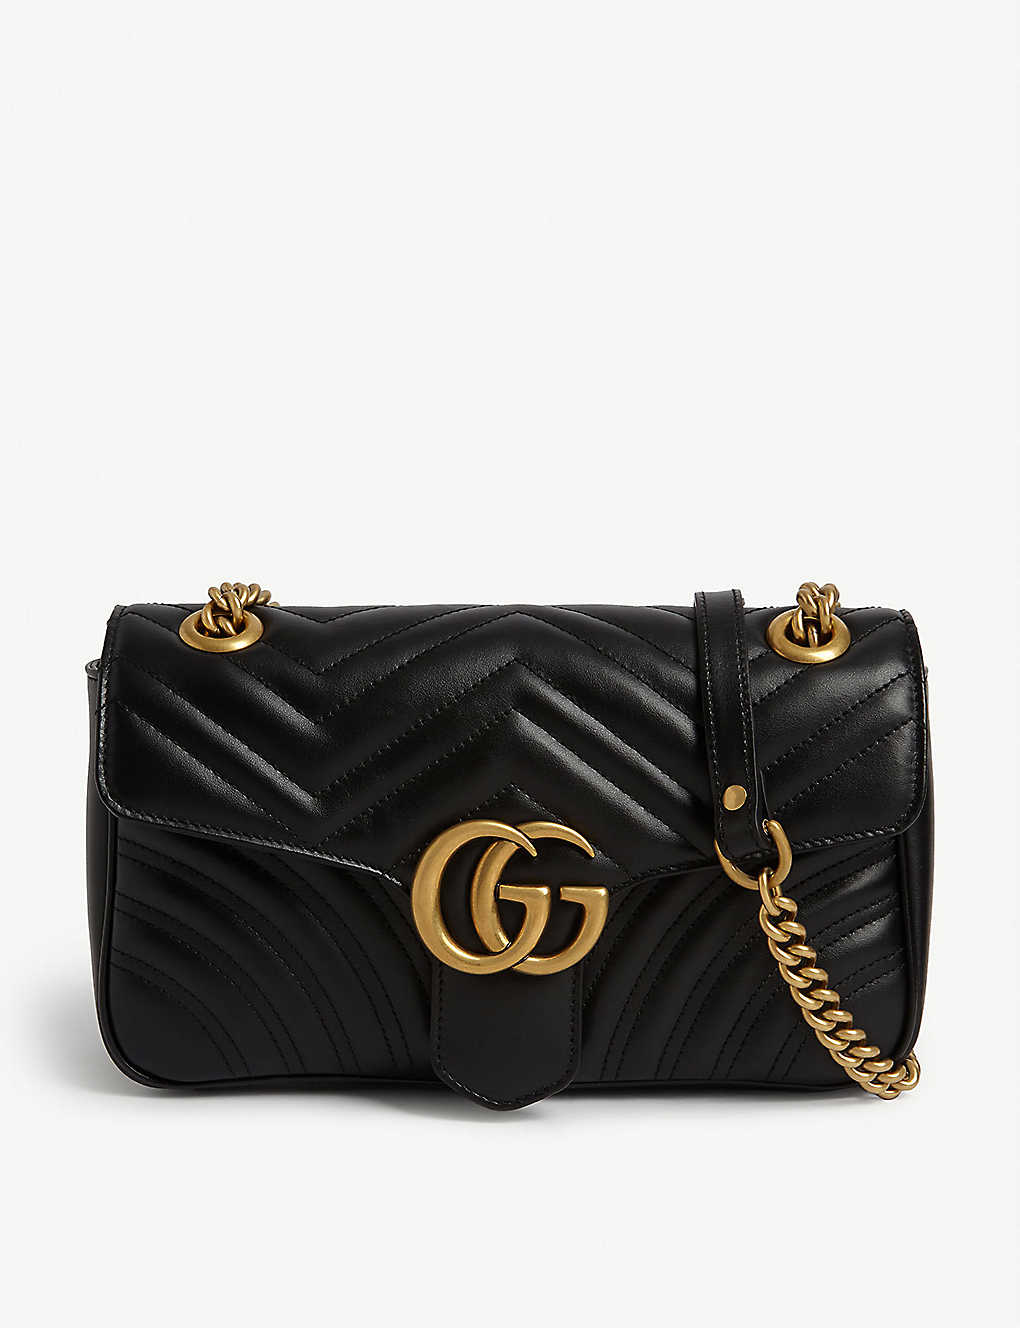 647c32f1e562 GUCCI - Marmont leather shoulder bag | Selfridges.com